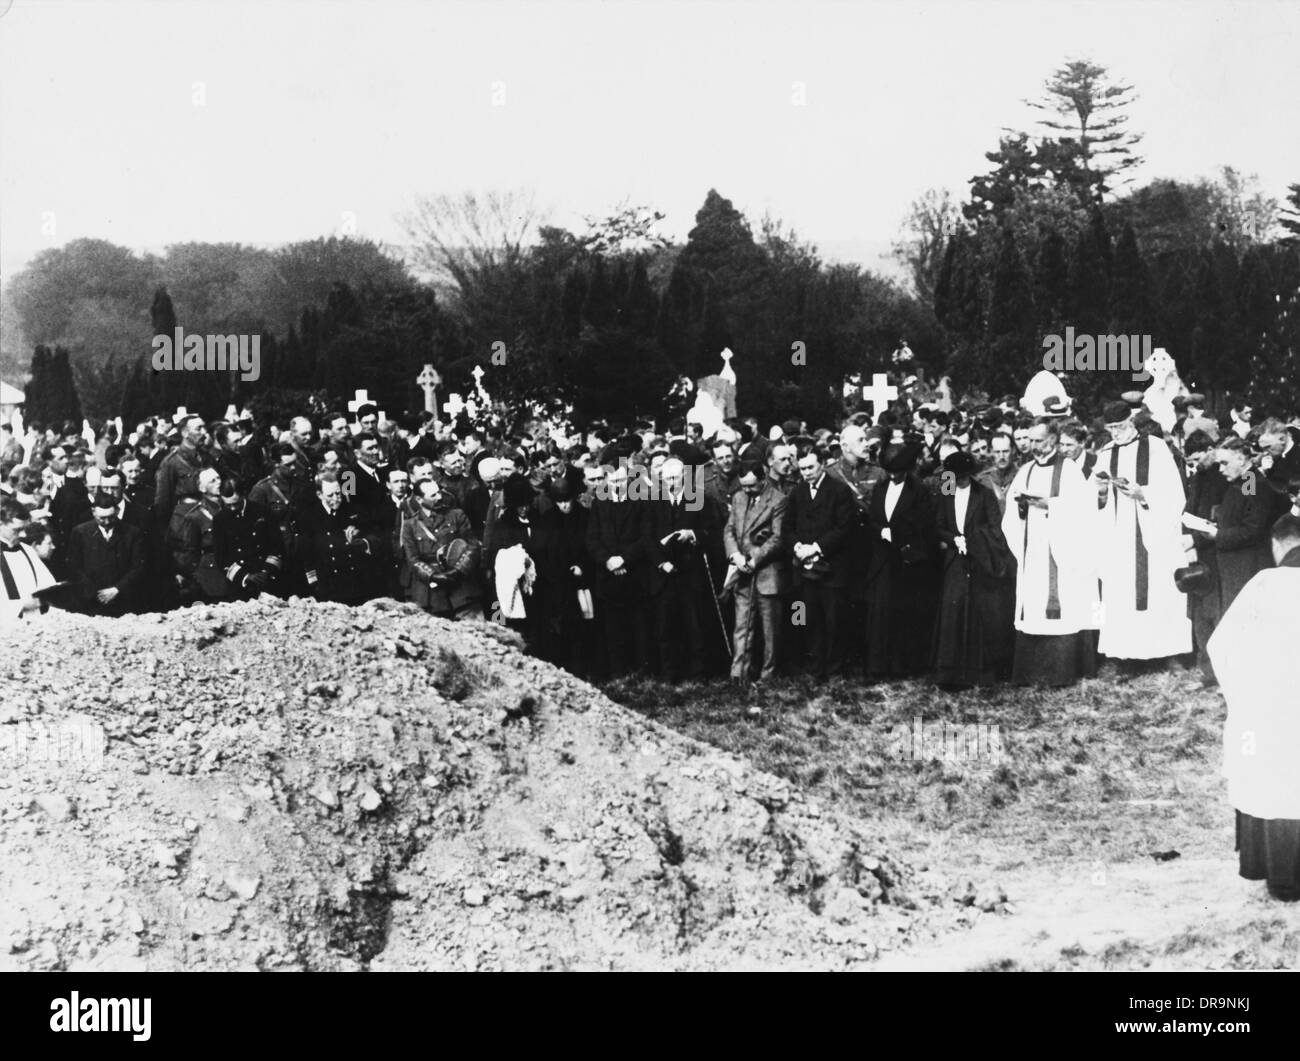 Funeral for victims of the First World War - Stock Image